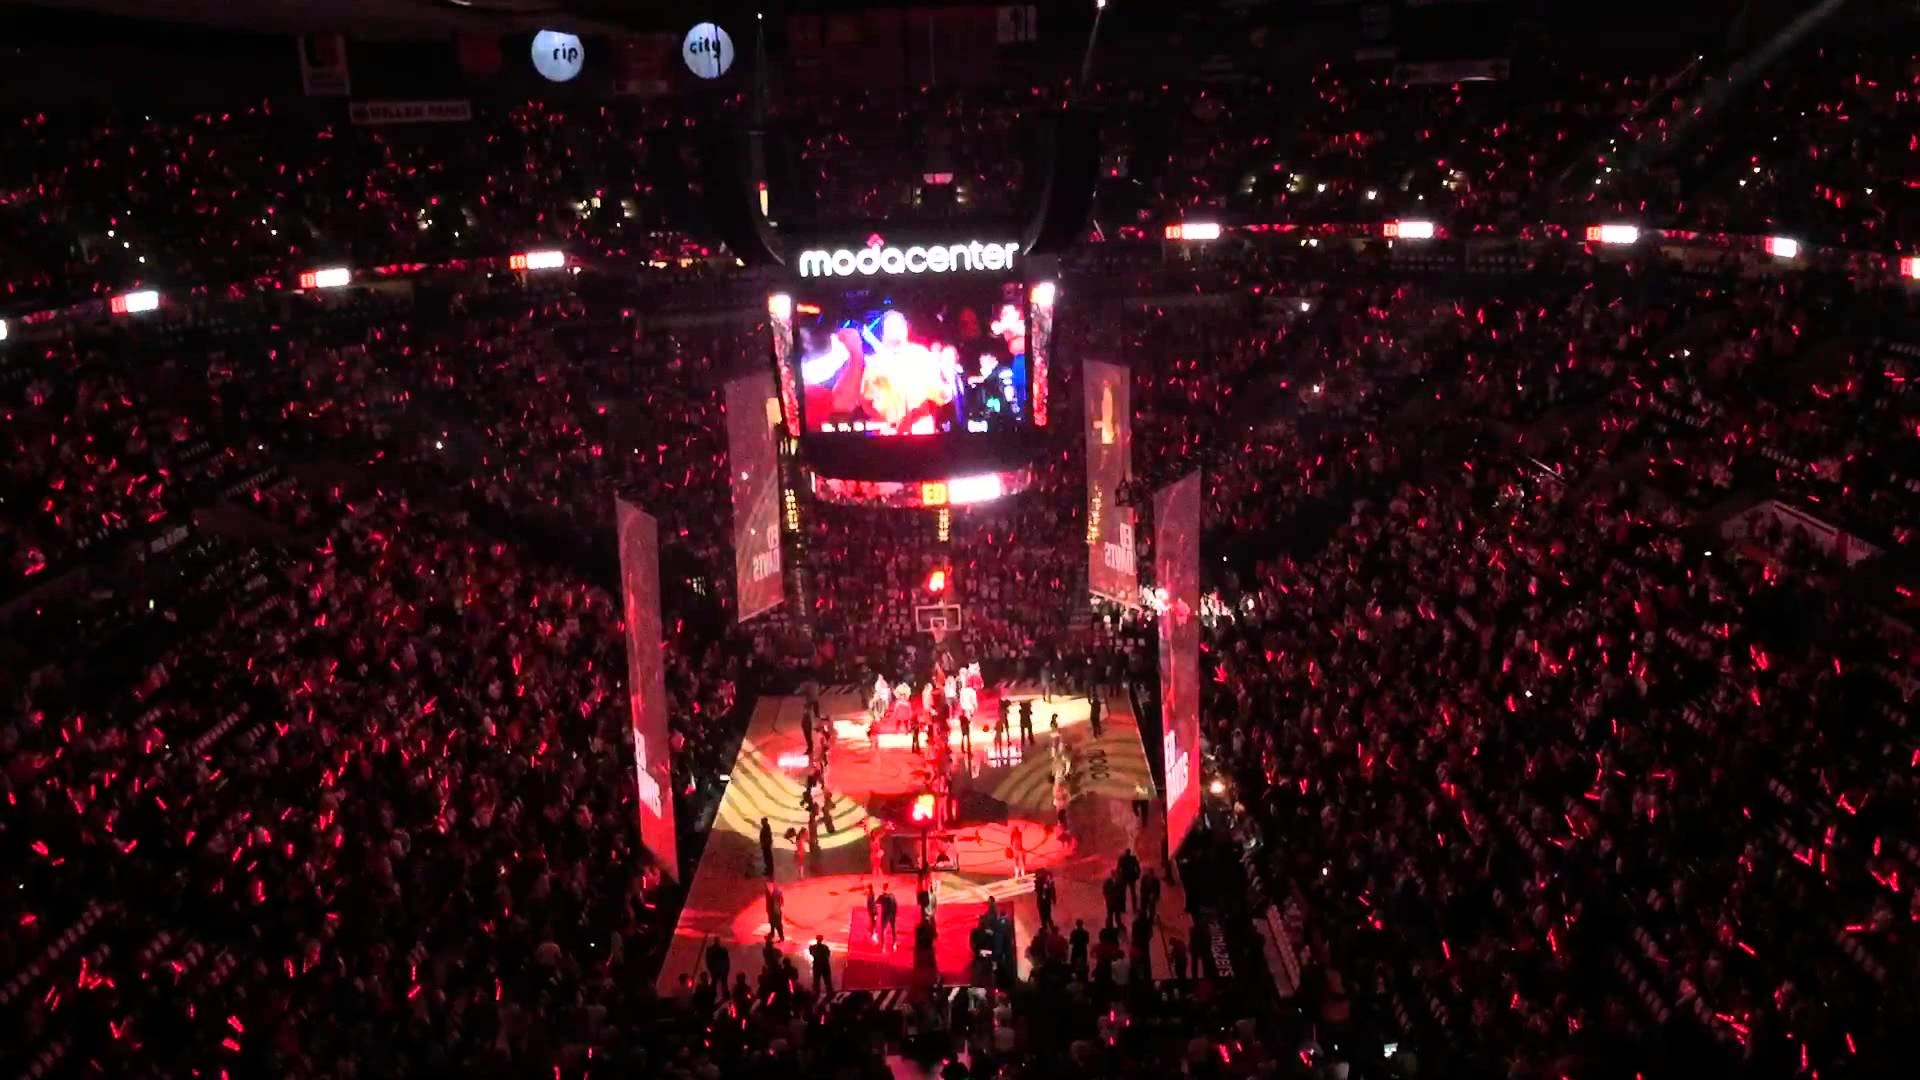 1920x1080 2015-16 Portland Trail Blazers Season Opener Introductions